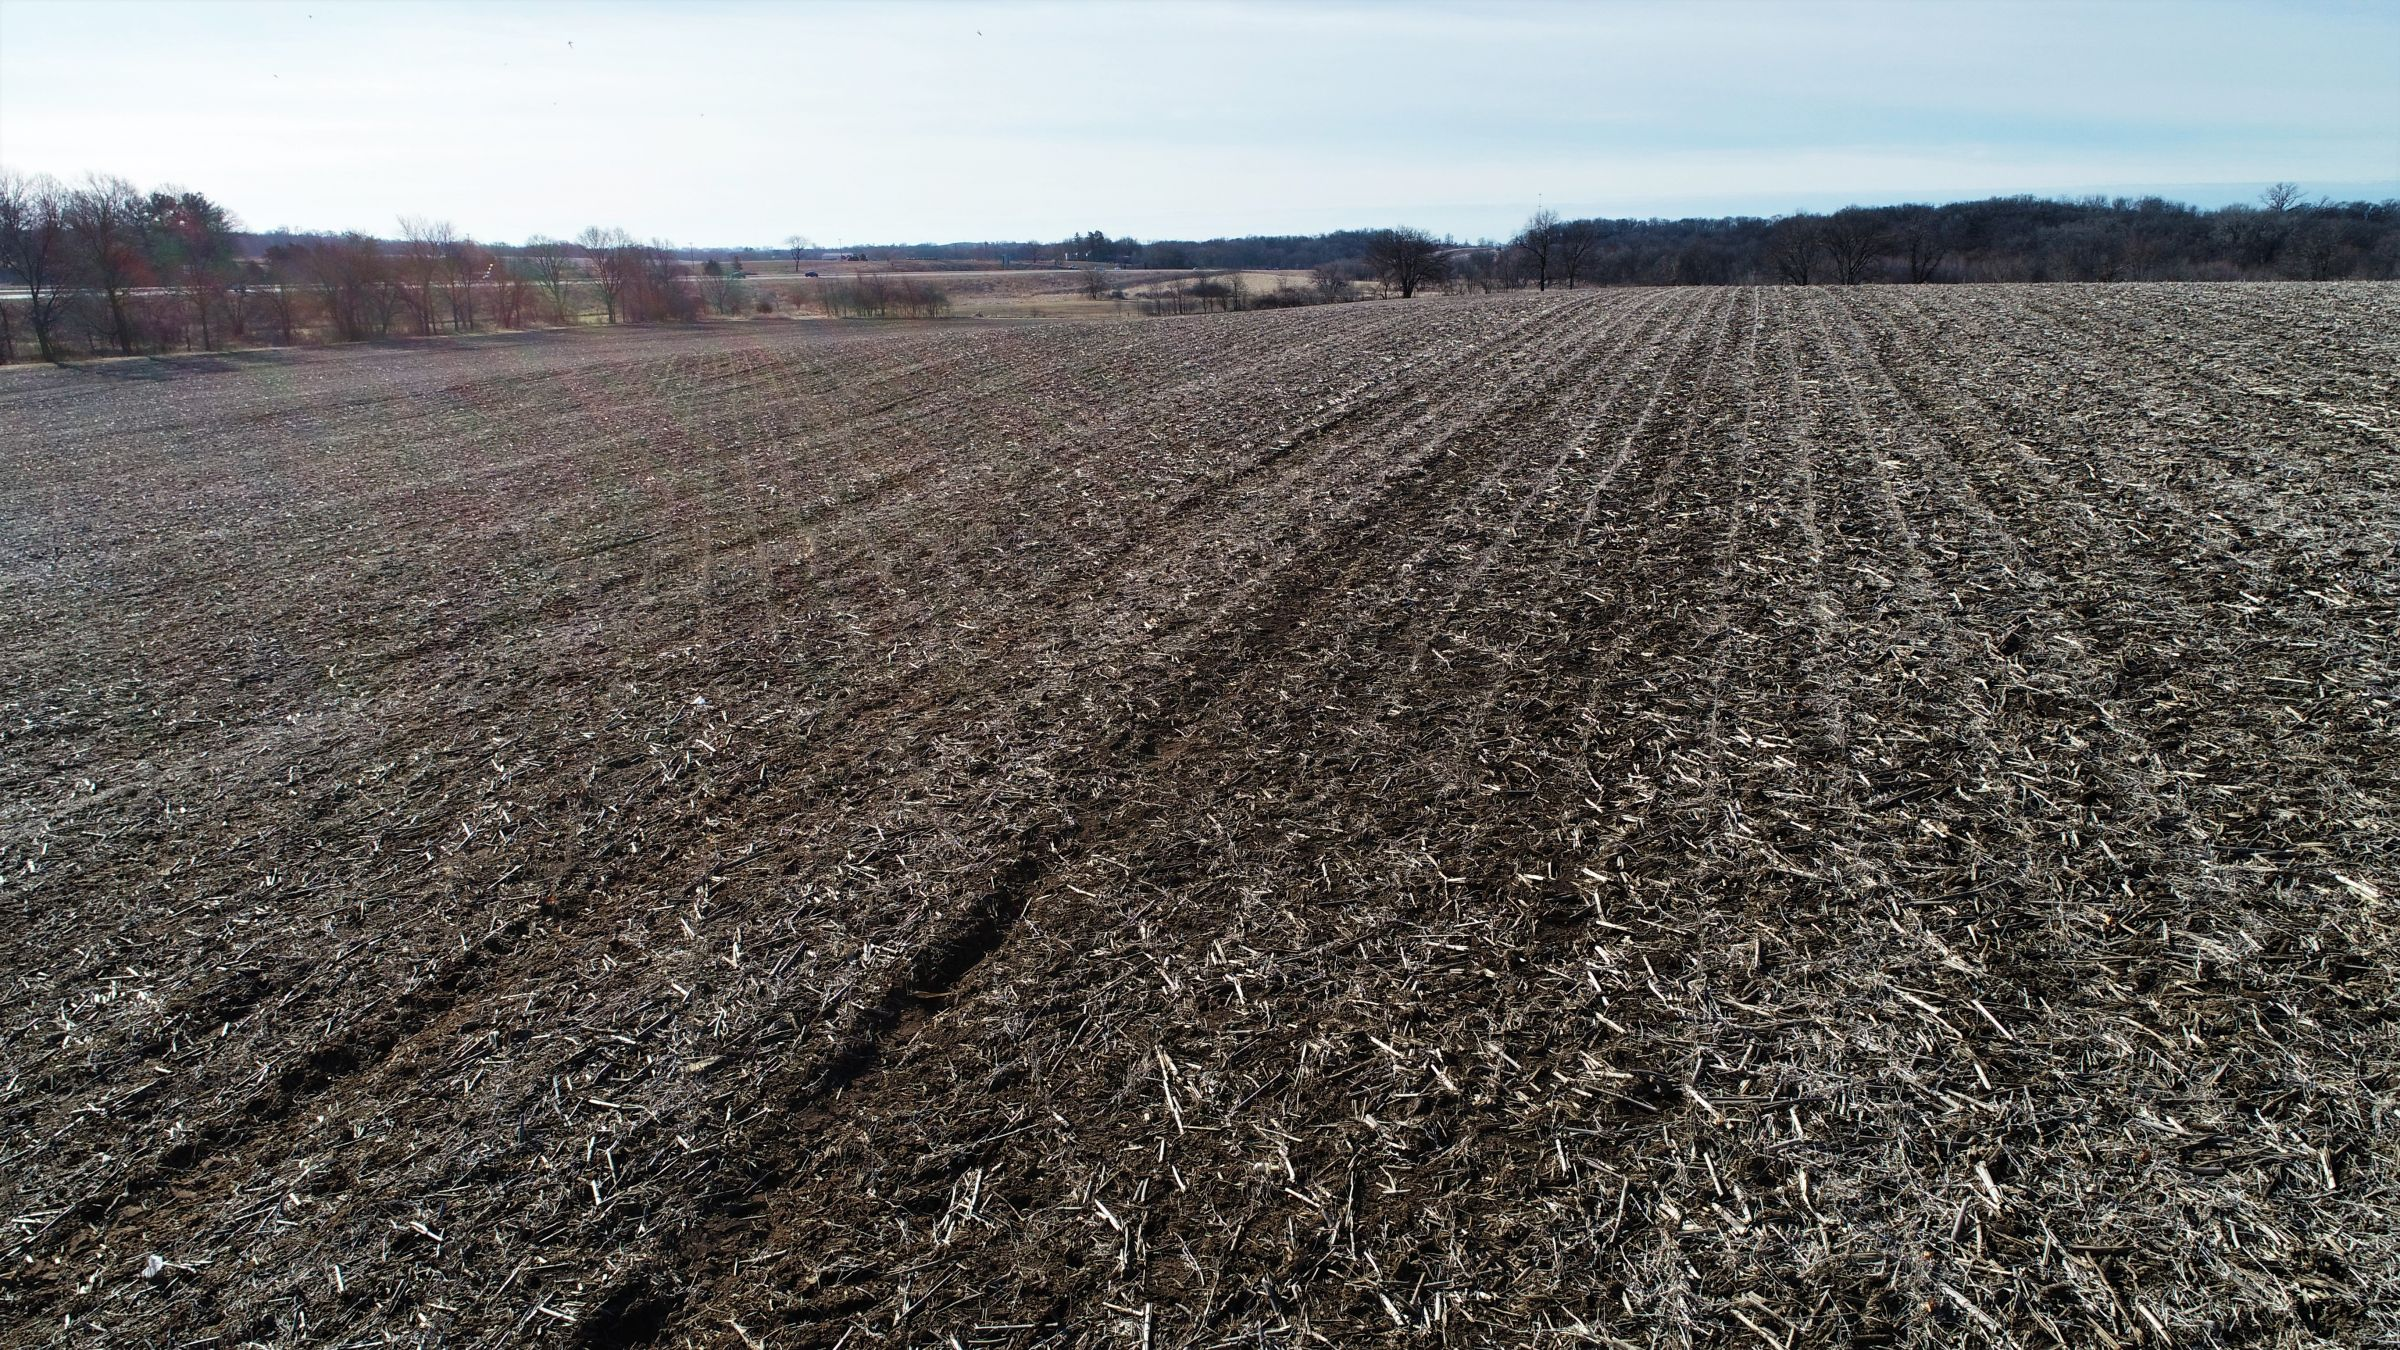 Warren County Land for Sale Photo 1